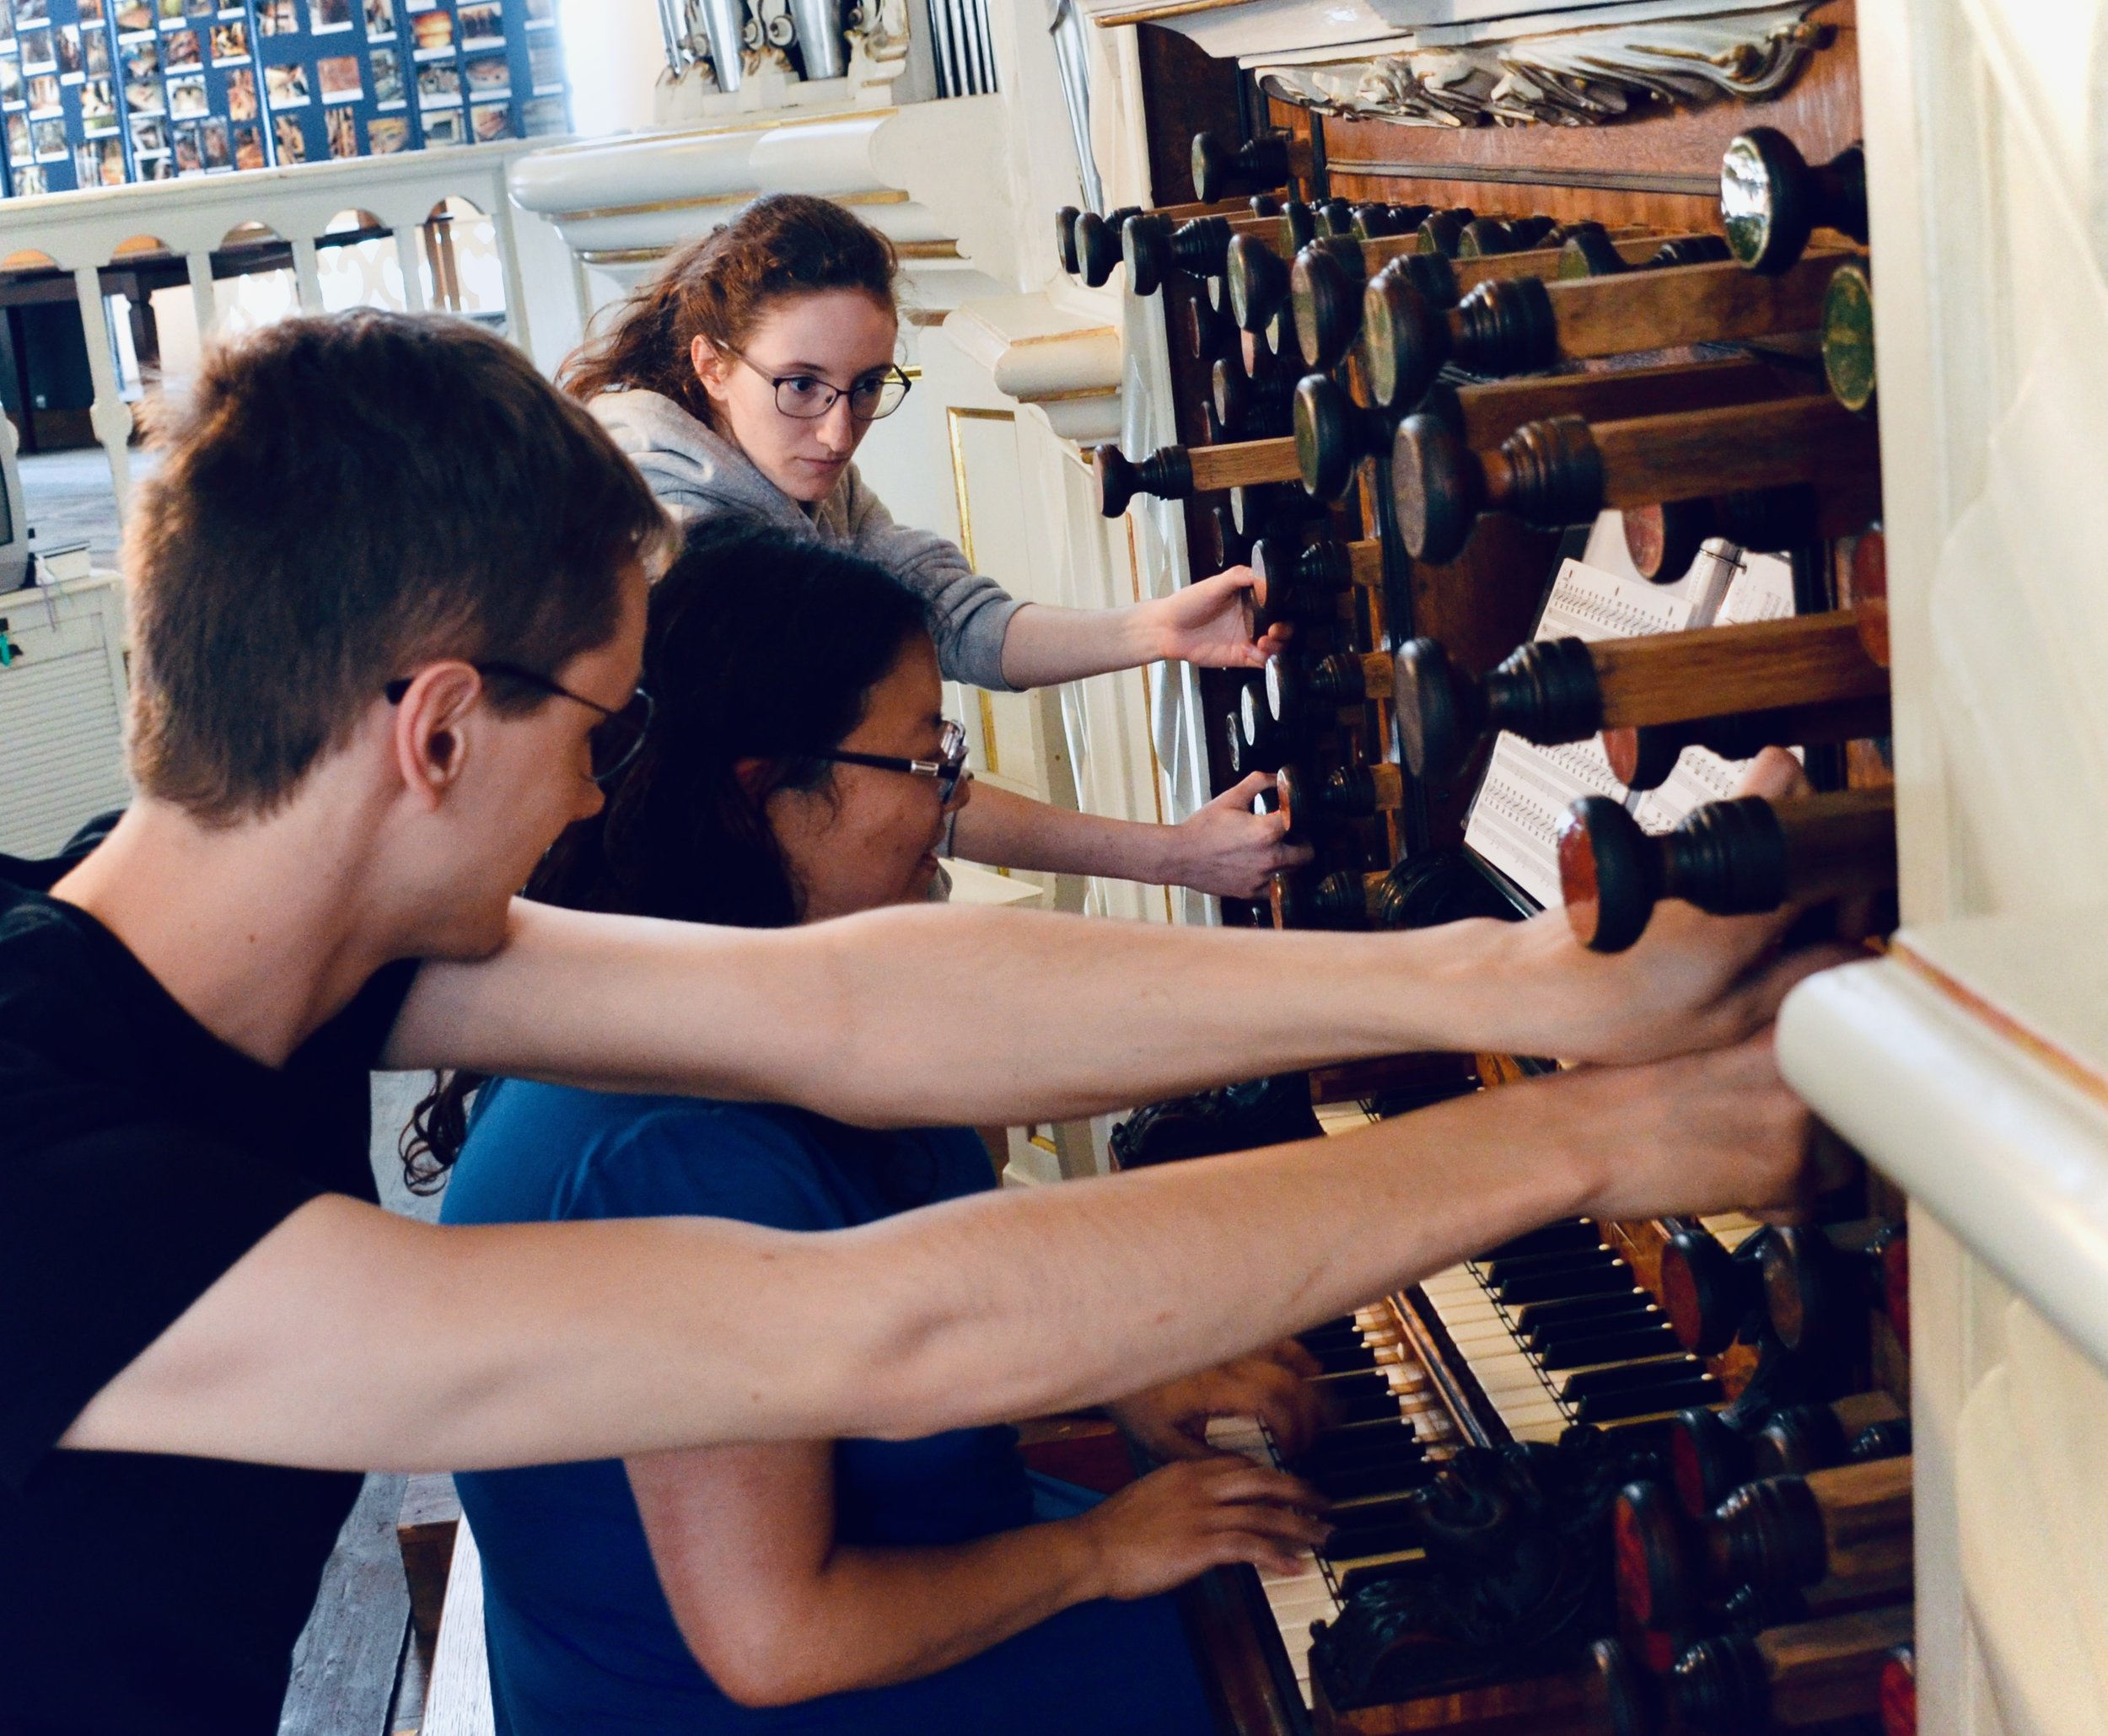 Jennifer Hsiao plays the 1730 Trost Organ, Stadtkirche, Waltershausen, assisted by Alex Ross and Rosemarie Tougas.